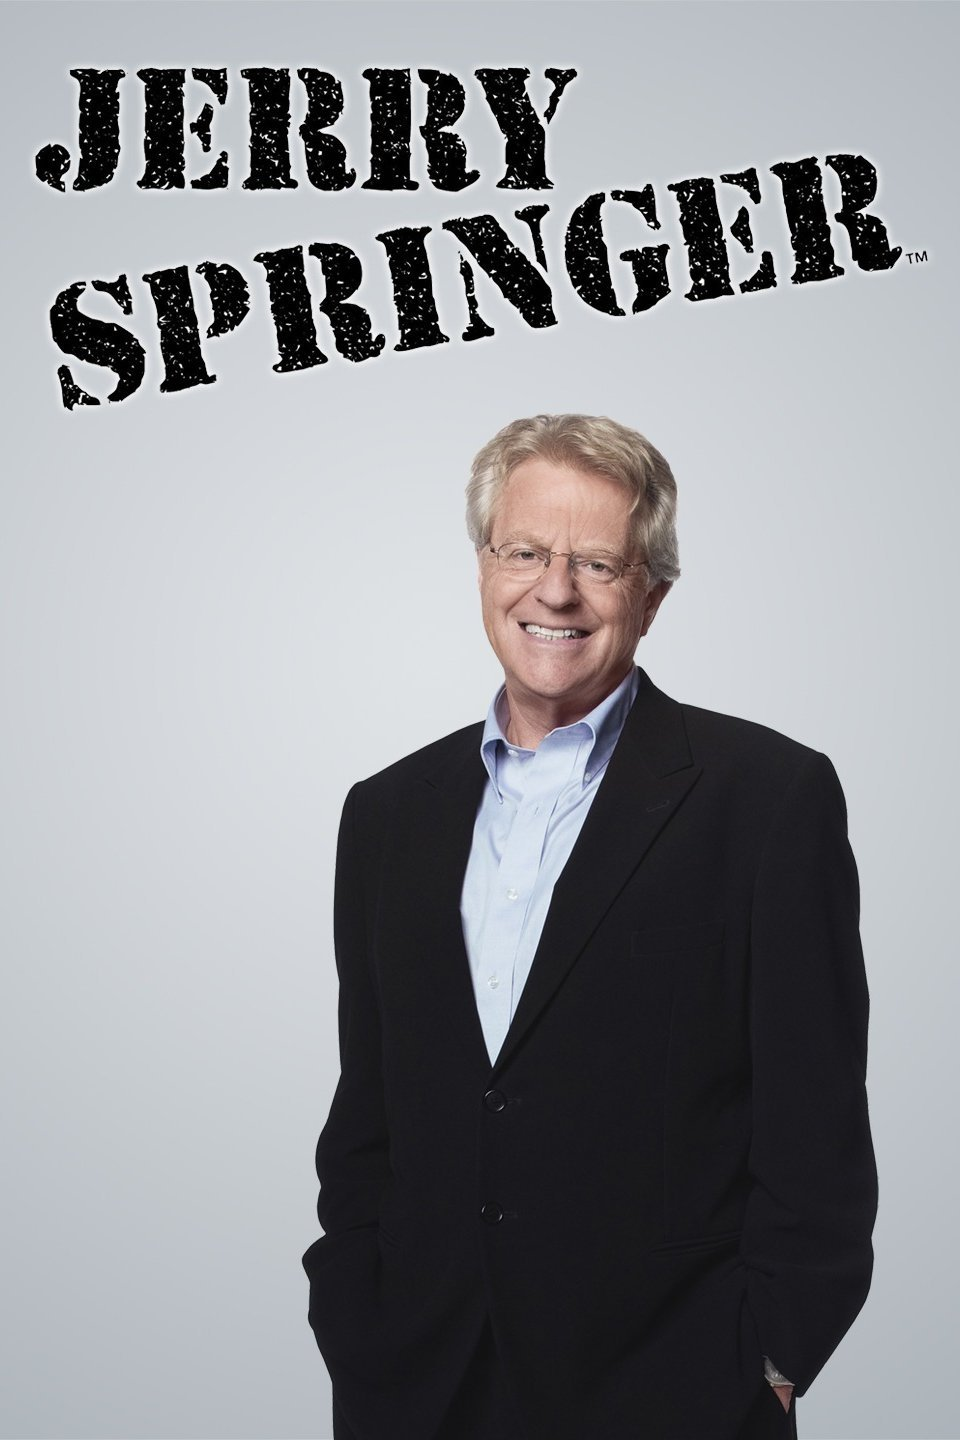 The%20Jerry%20Springer%20Show